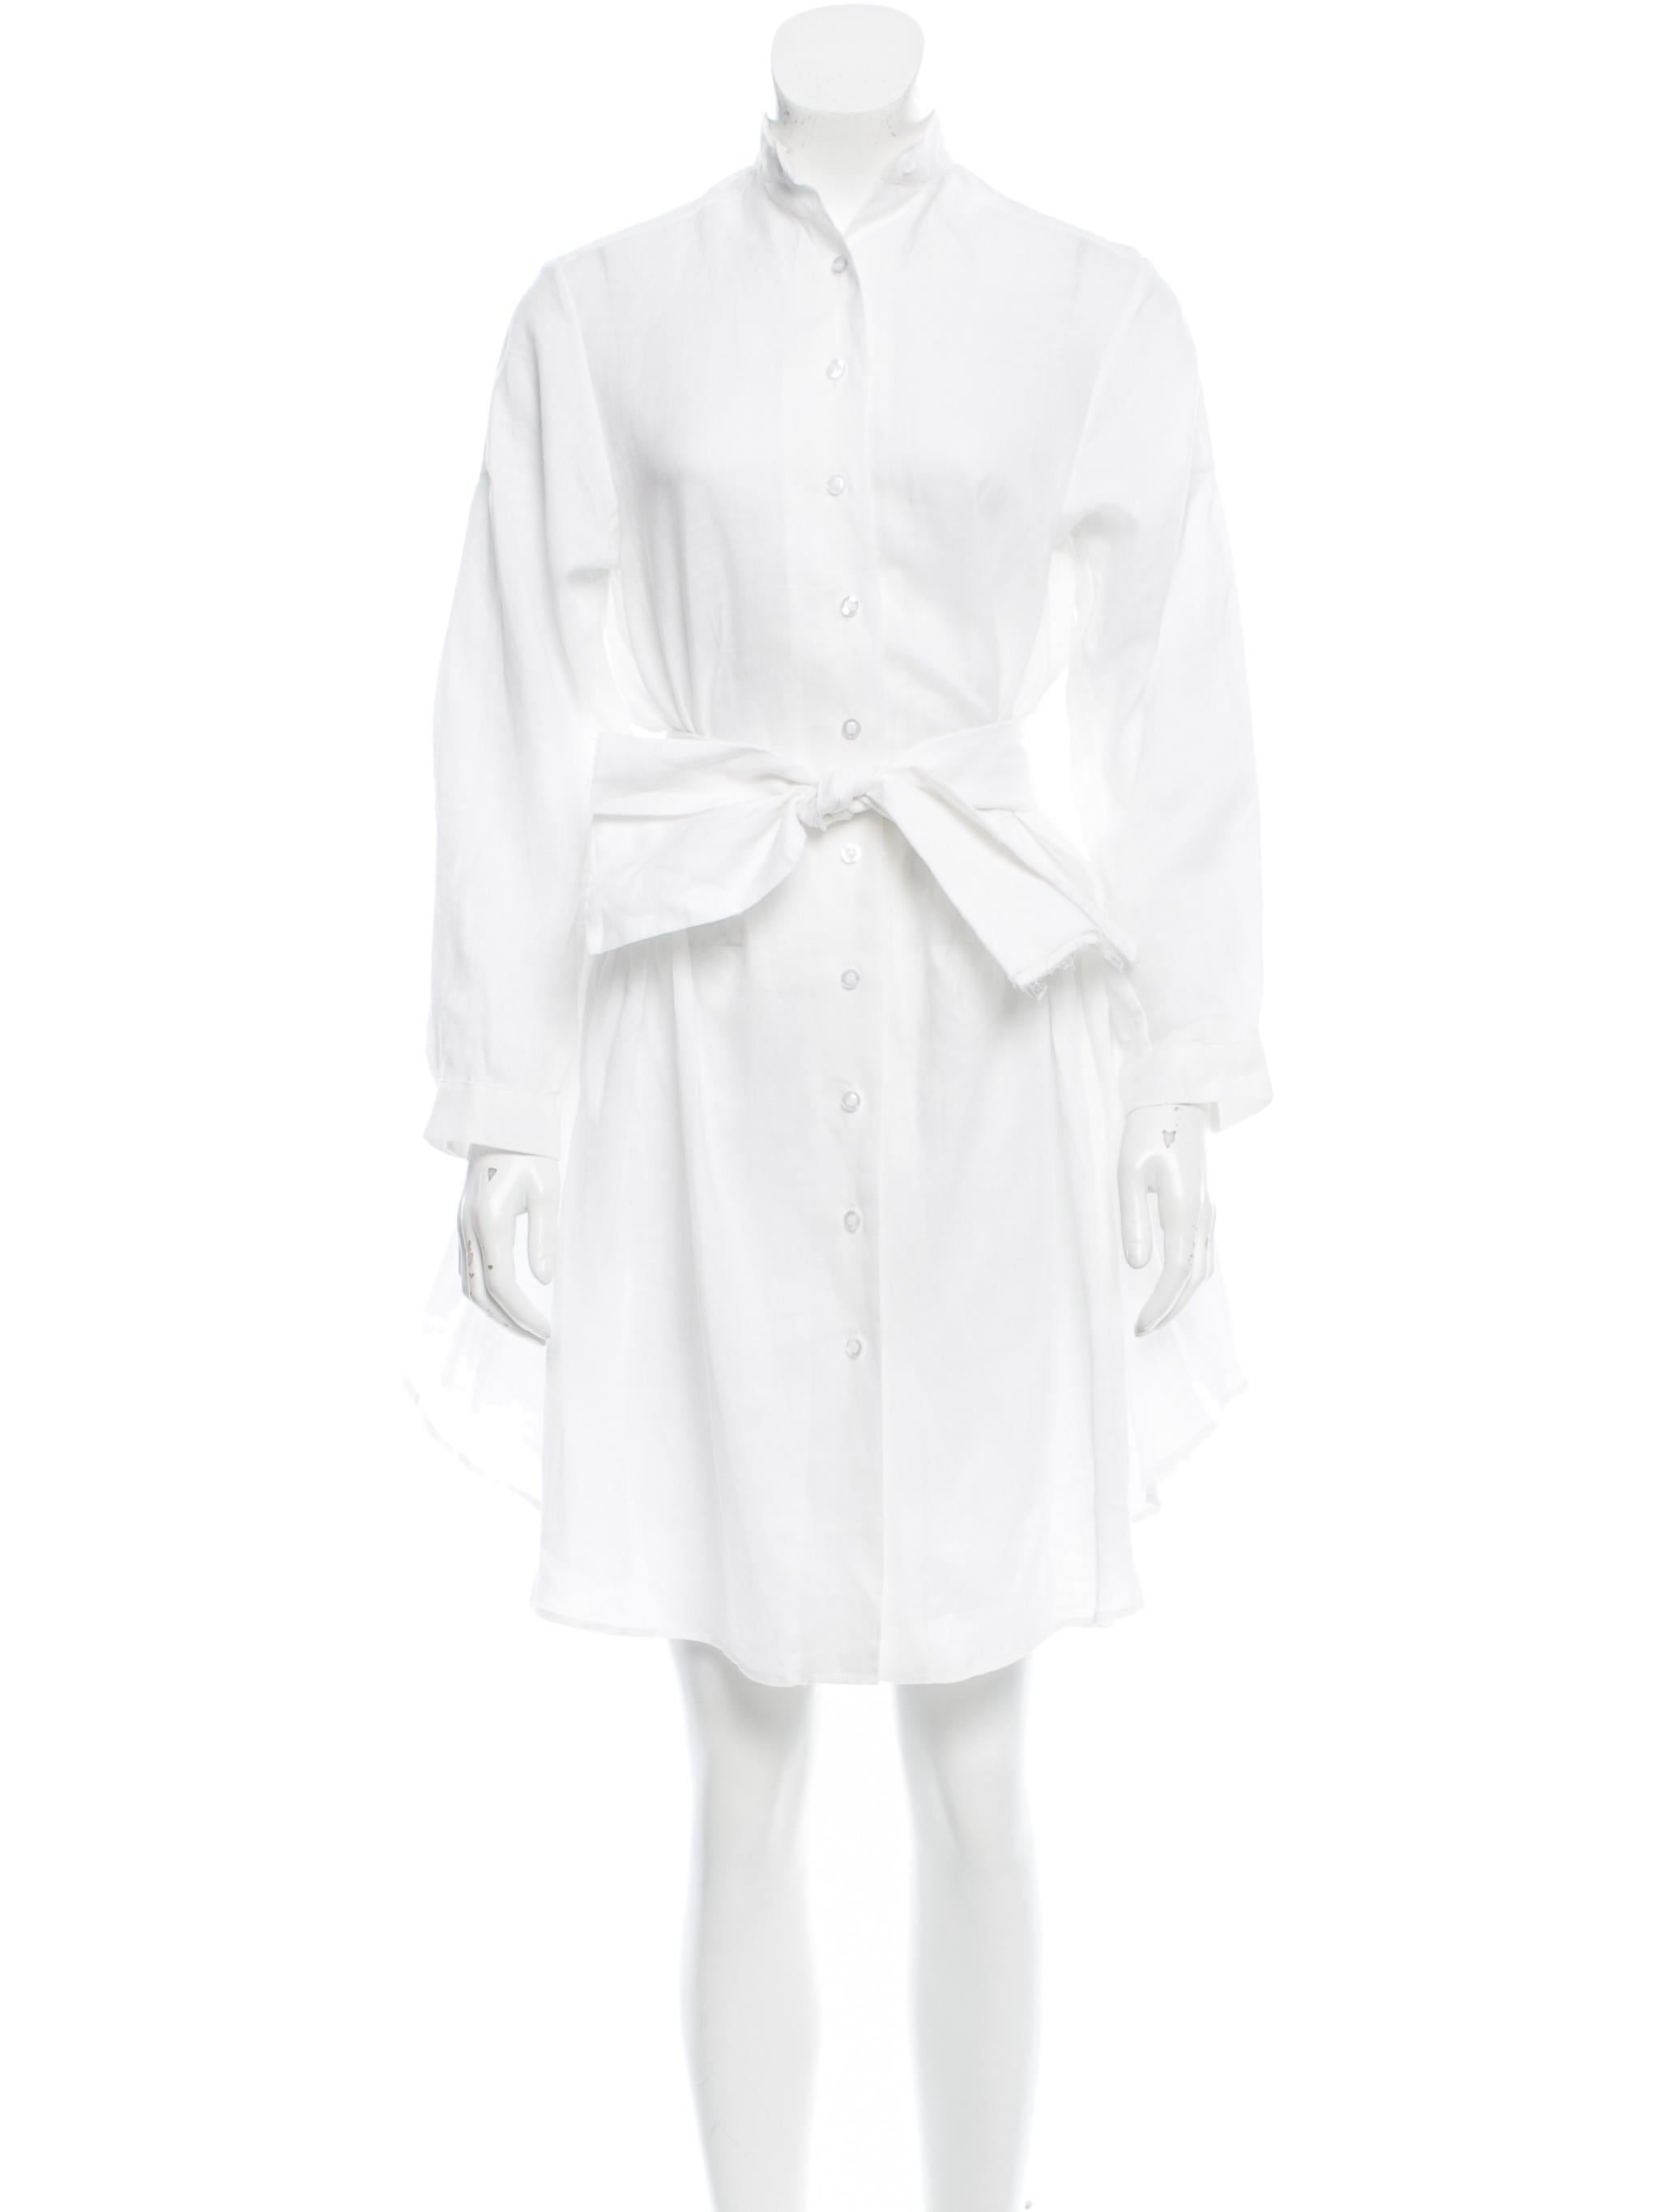 Isabel marant linen button up dress w tags clothing for Linen button up shirt womens